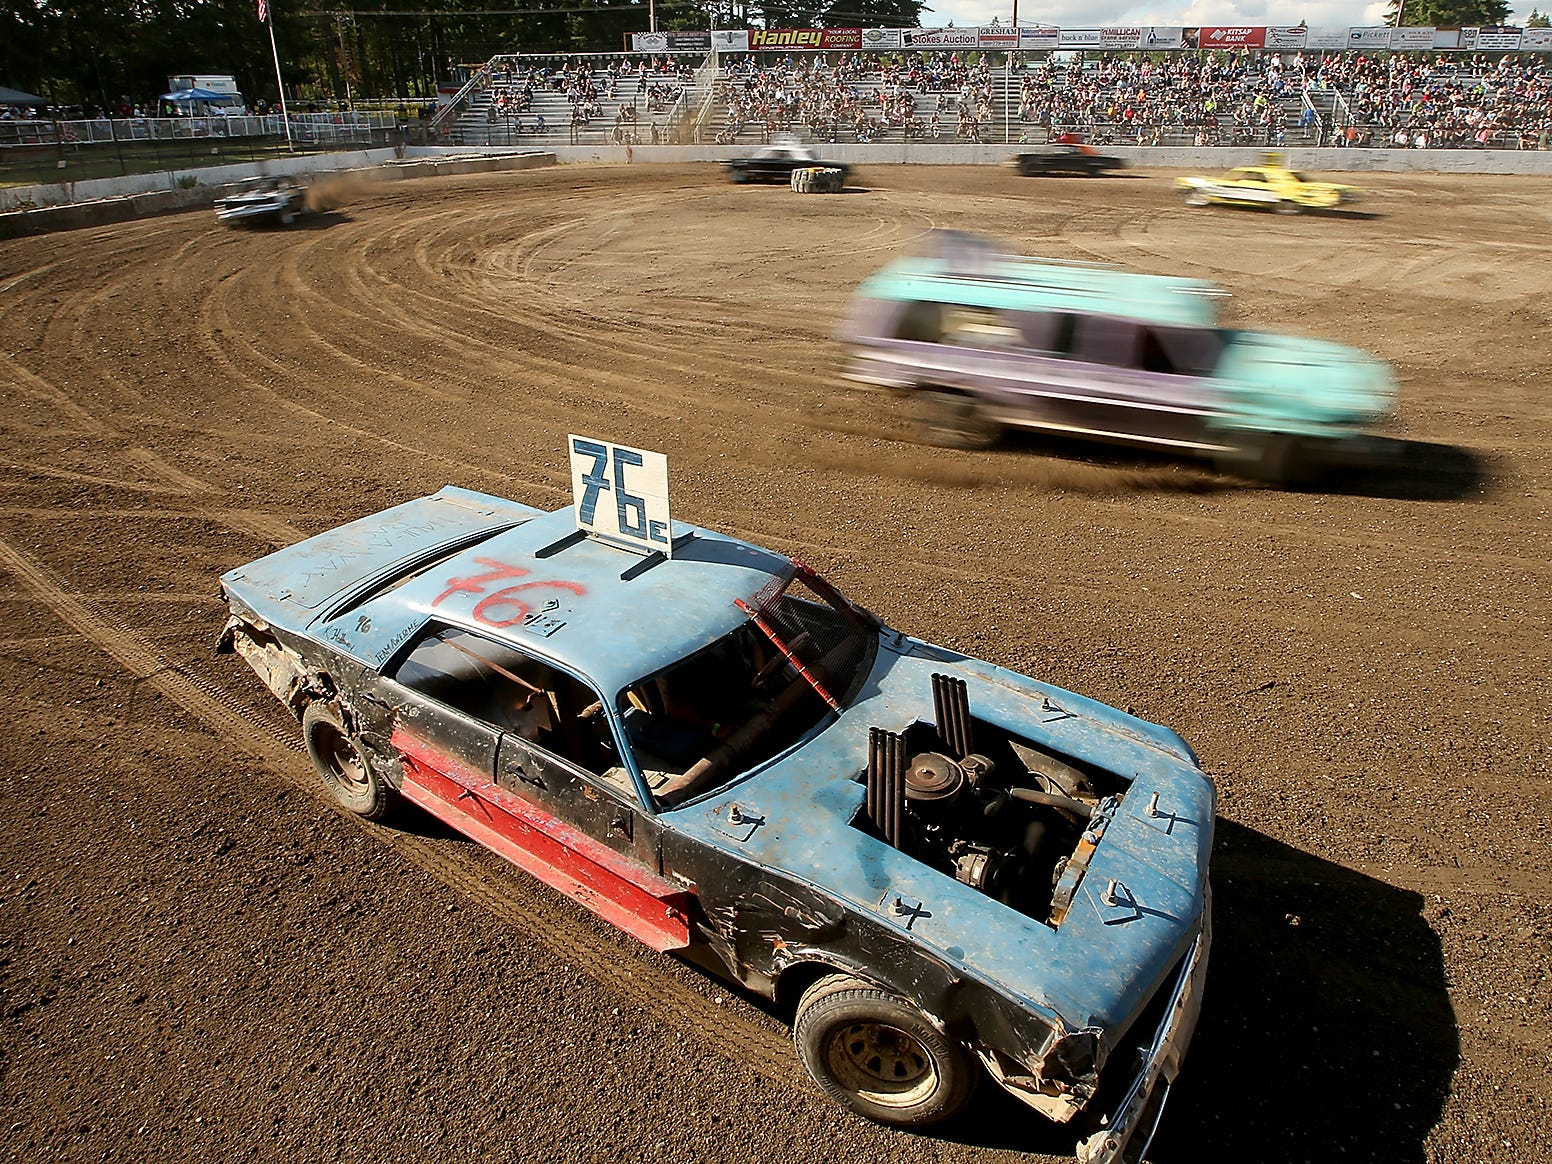 Cars continue to streak past as teh 76 car comes to a stop in the middle of the race during the Kitsap Destruction Derby Association derby at Thunderbird Stadium on Saturday, June 23, 2018.